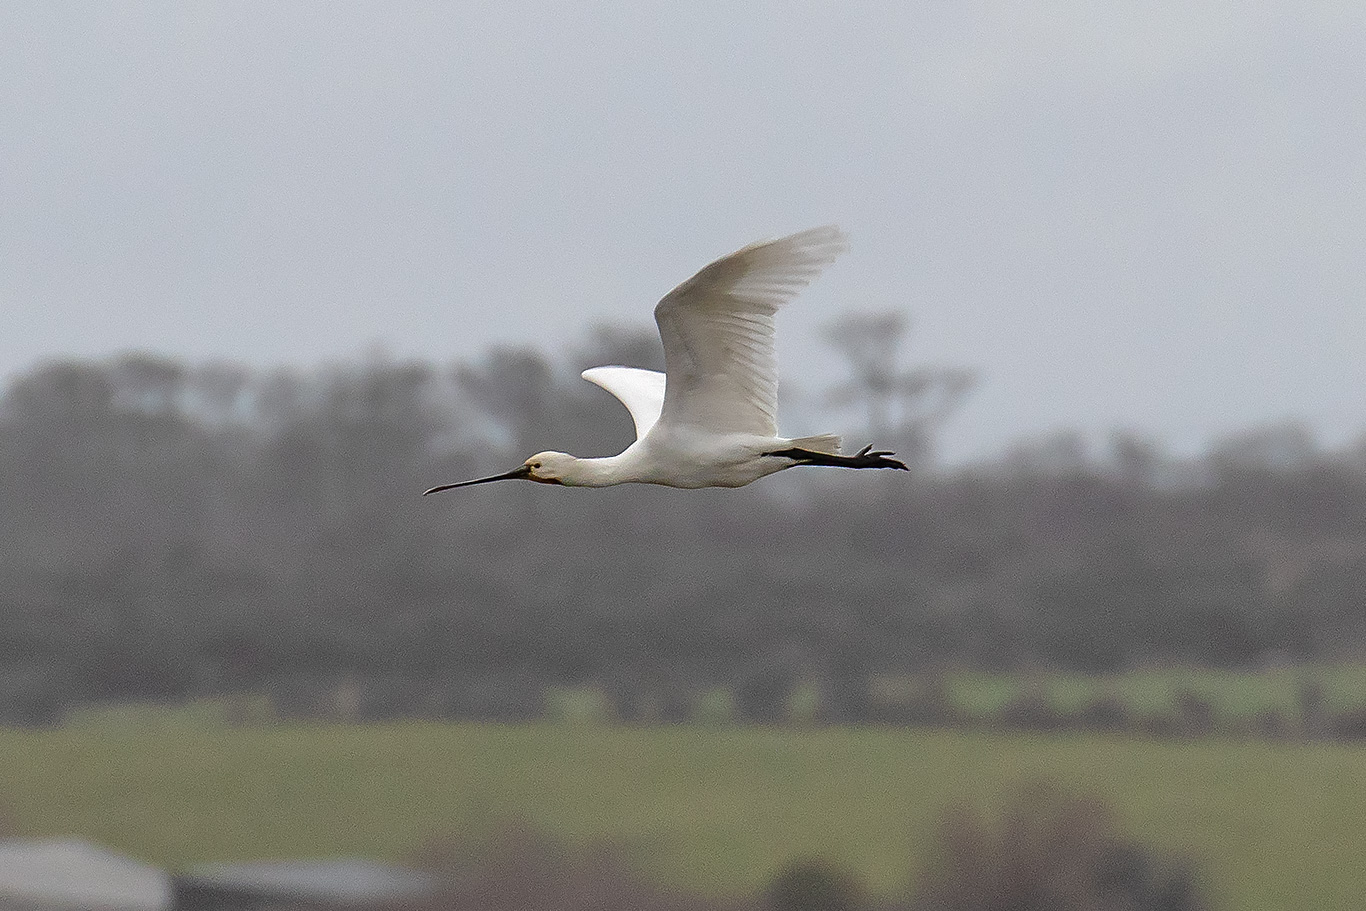 Spoonbill, Co. Wexford, Ireland.